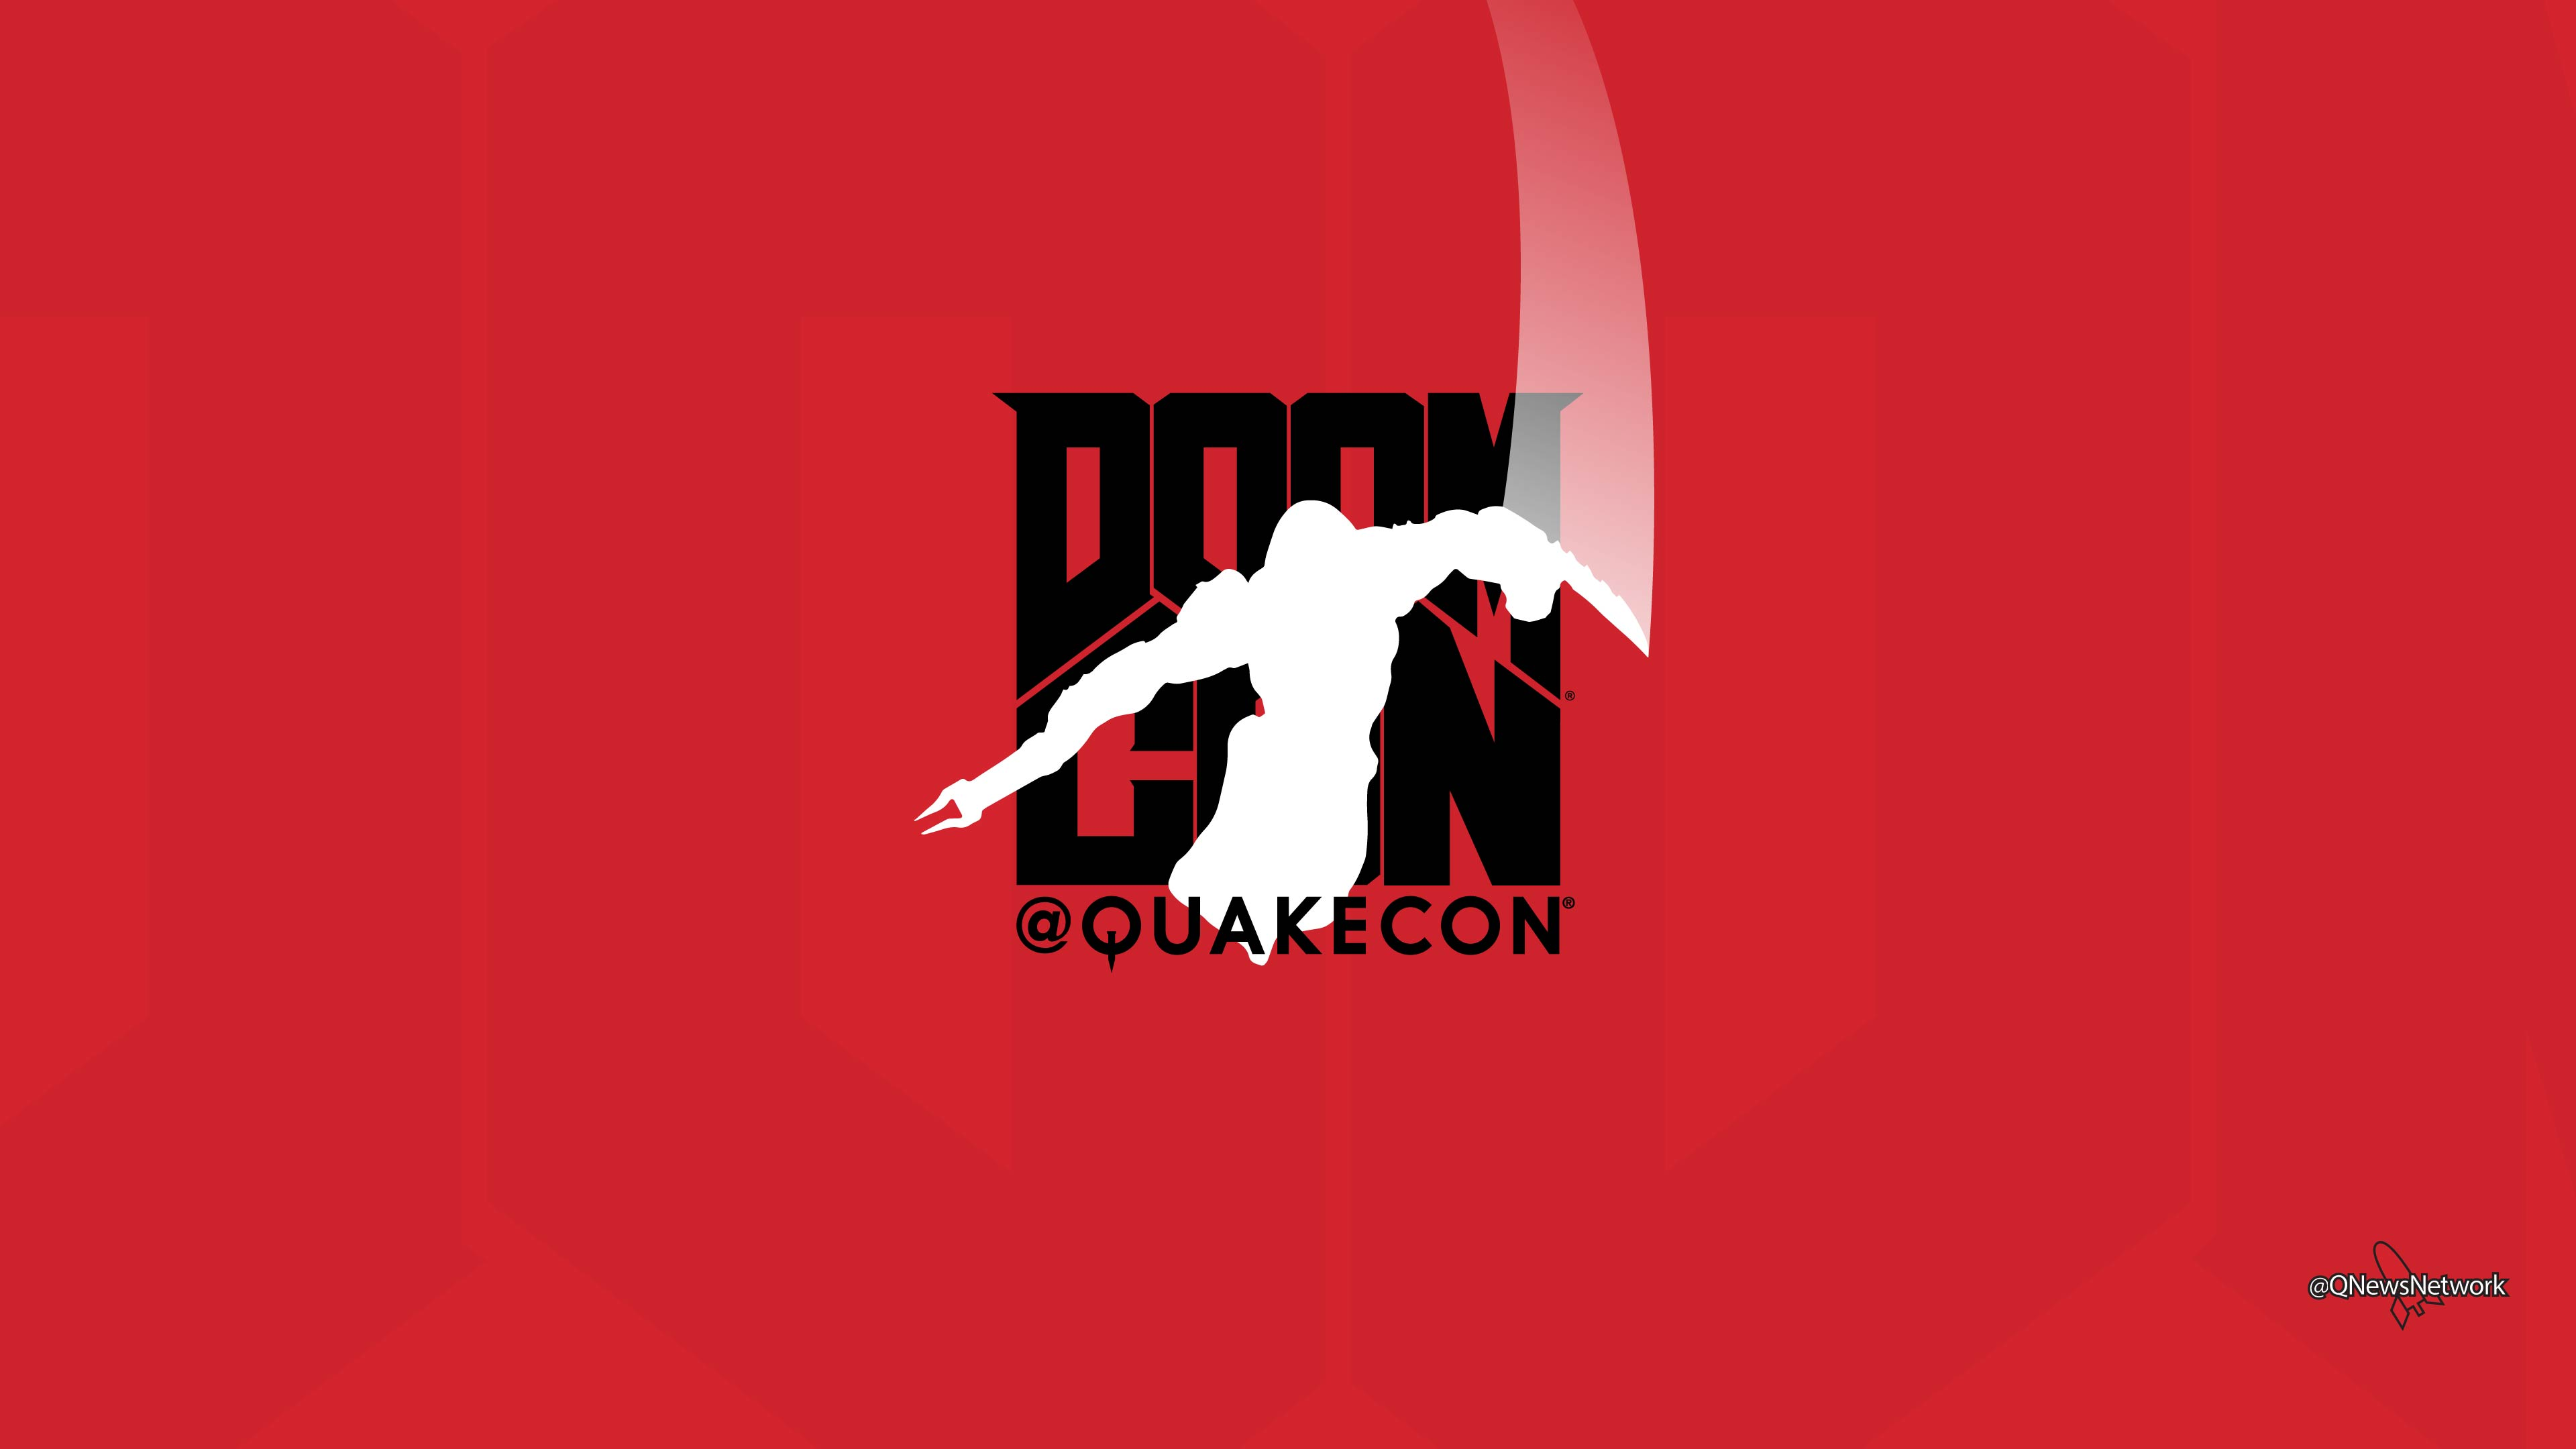 Doomcon Wallpaper Doom Slayer Q News Network